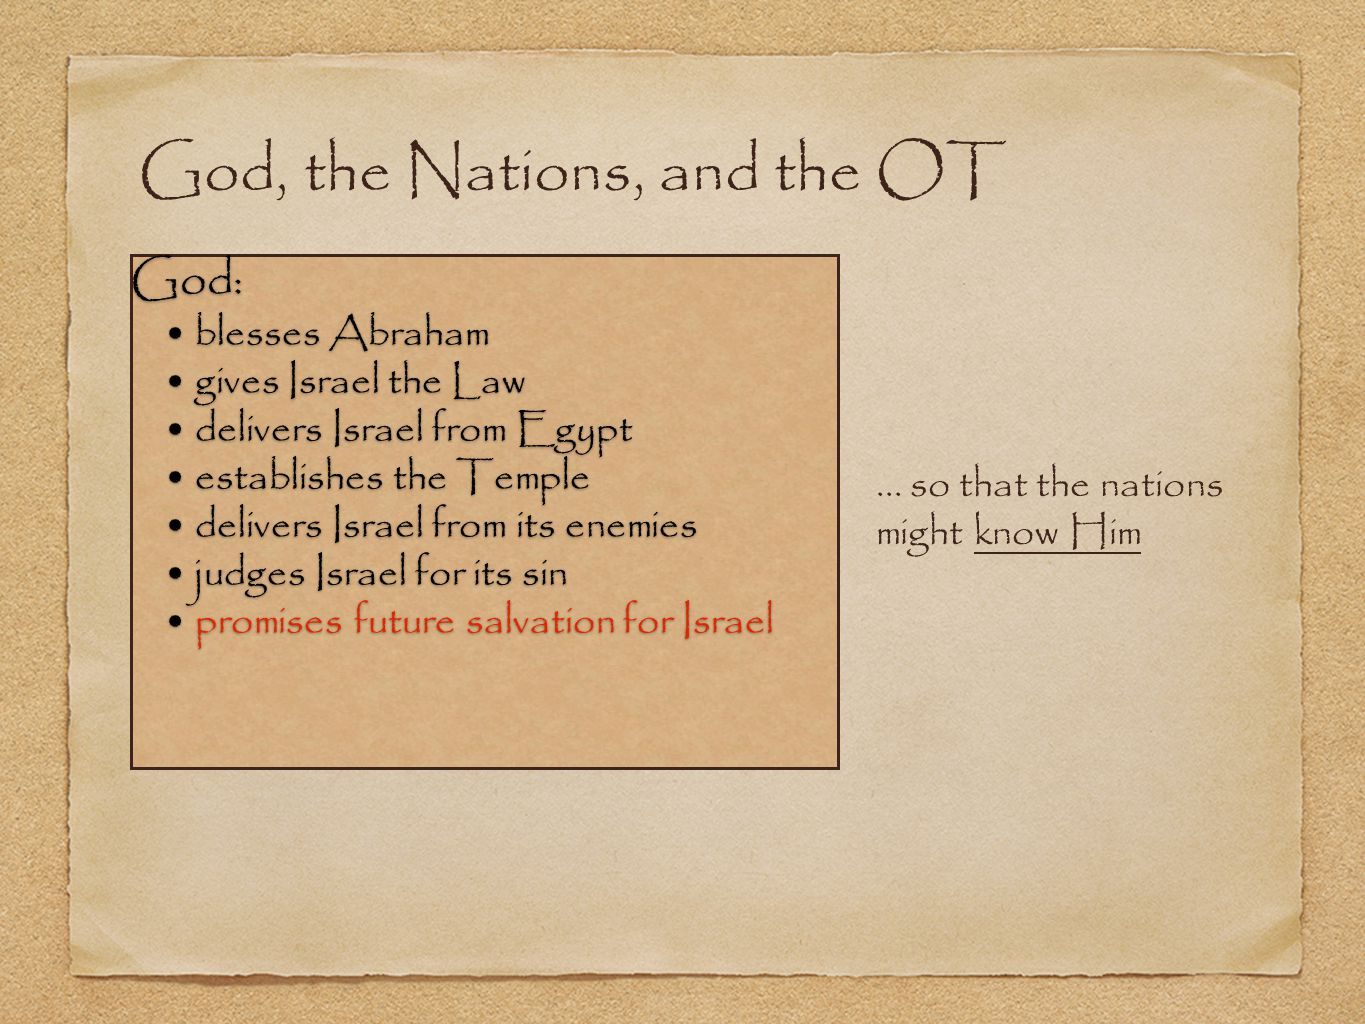 God, the Nations, and the OT God: blesses Abraham blesses Abraham gives Israel the Law gives Israel the Law delivers Israel from Egypt delivers Israel from Egypt establishes the Temple establishes the Temple delivers Israel from its enemies delivers Israel from its enemies judges Israel for its sin judges Israel for its sin promises future salvation for Israel promises future salvation for Israel...